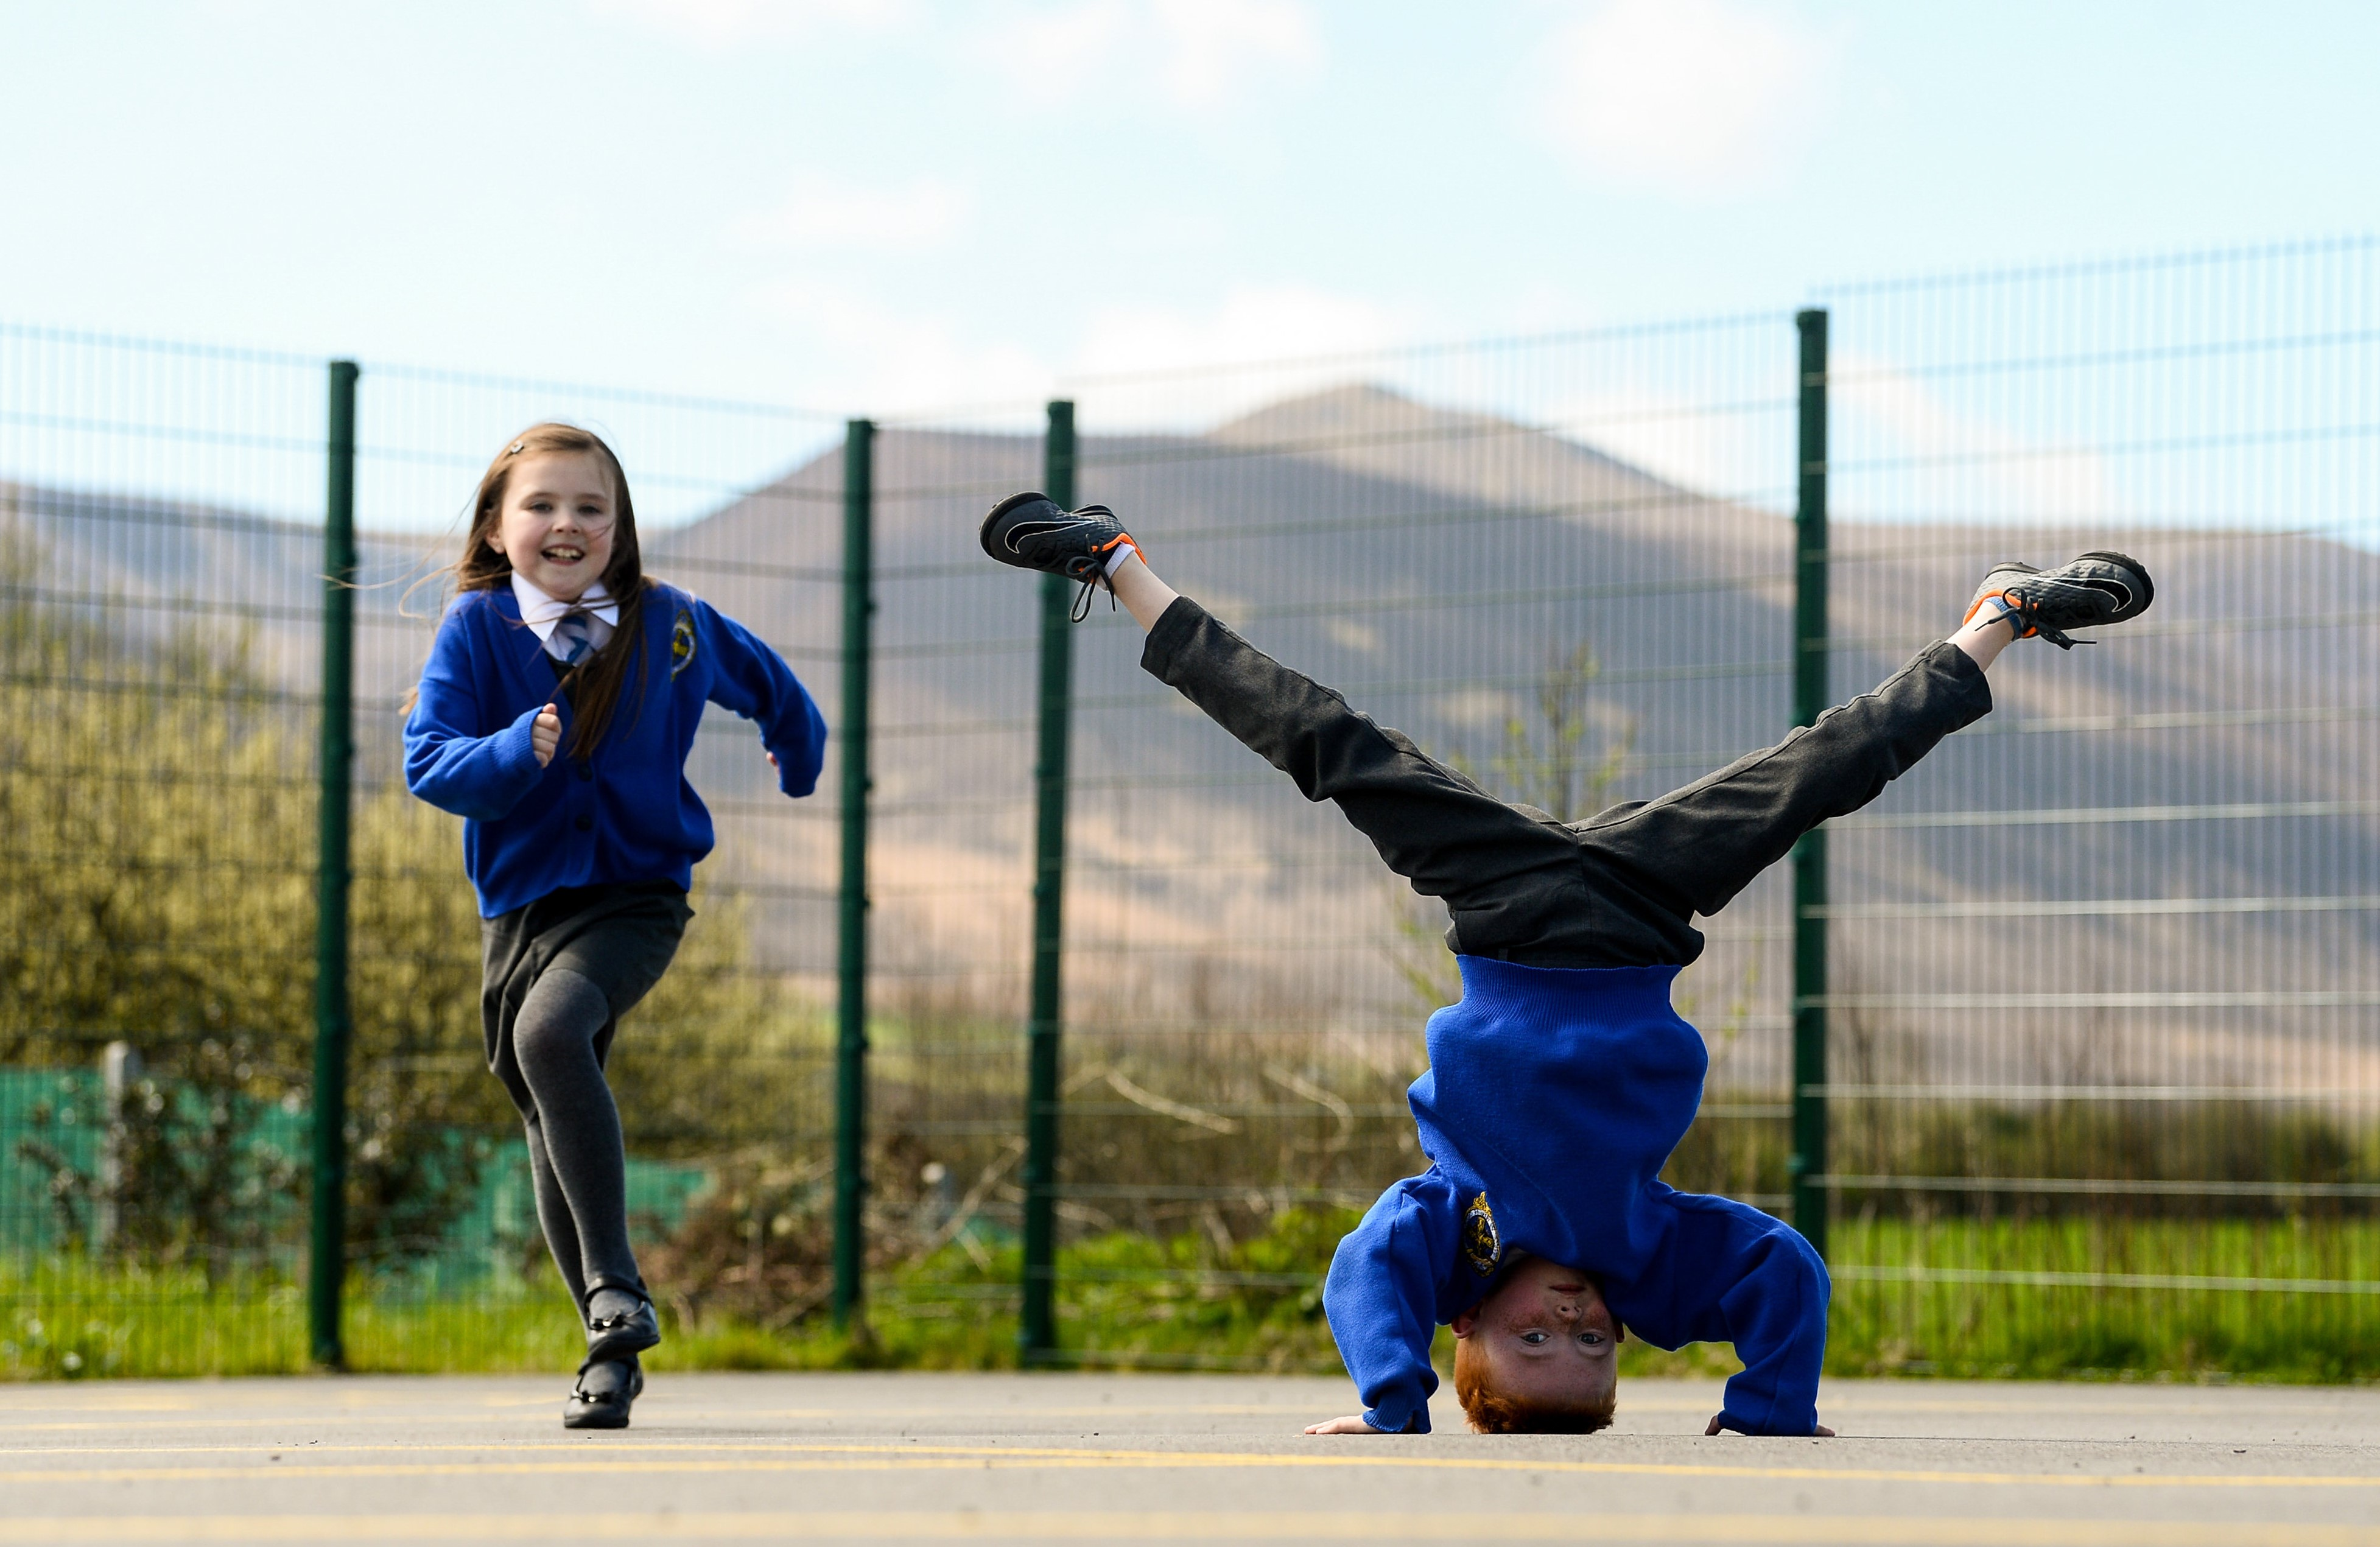 The Daily Mile - Primary Schools